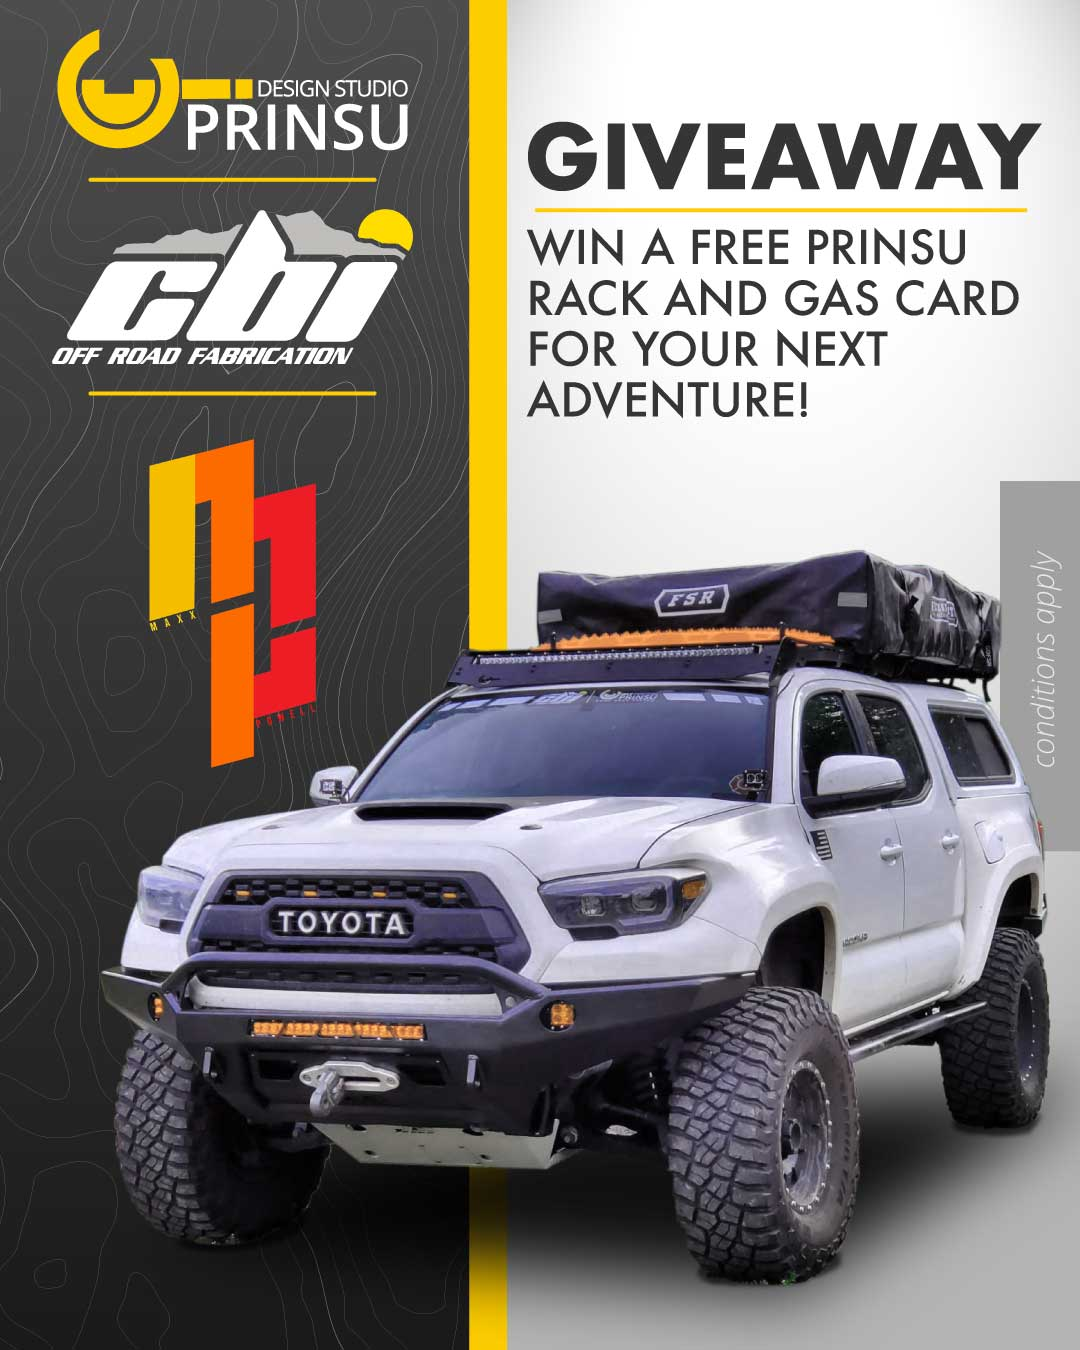 Enter to win the Prinsu Design Studio Roof Rack and Gas Card Giveaway Image